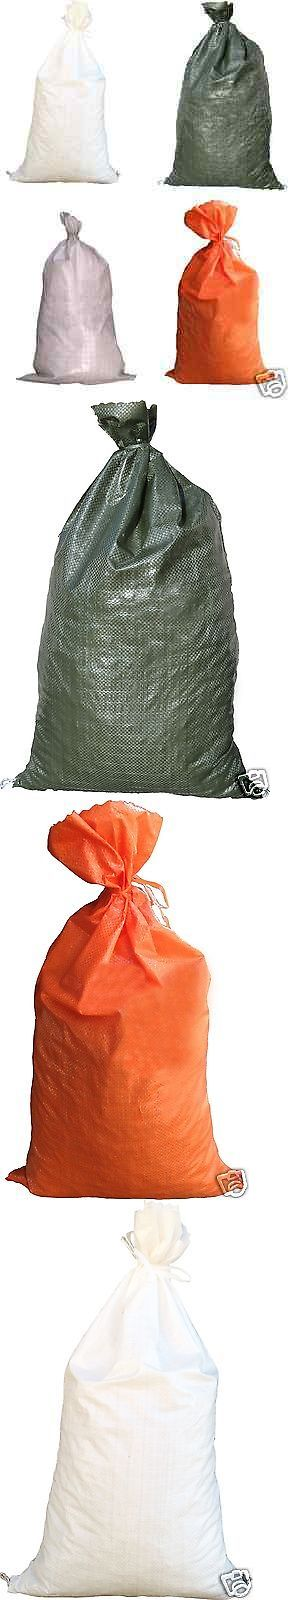 Other Sporting Goods 310: Sandbags For Sale W Ties 14 X26 For Emergency Flood Barriers, Sandbag, Poly Bag -> BUY IT NOW ONLY: $159 on eBay!